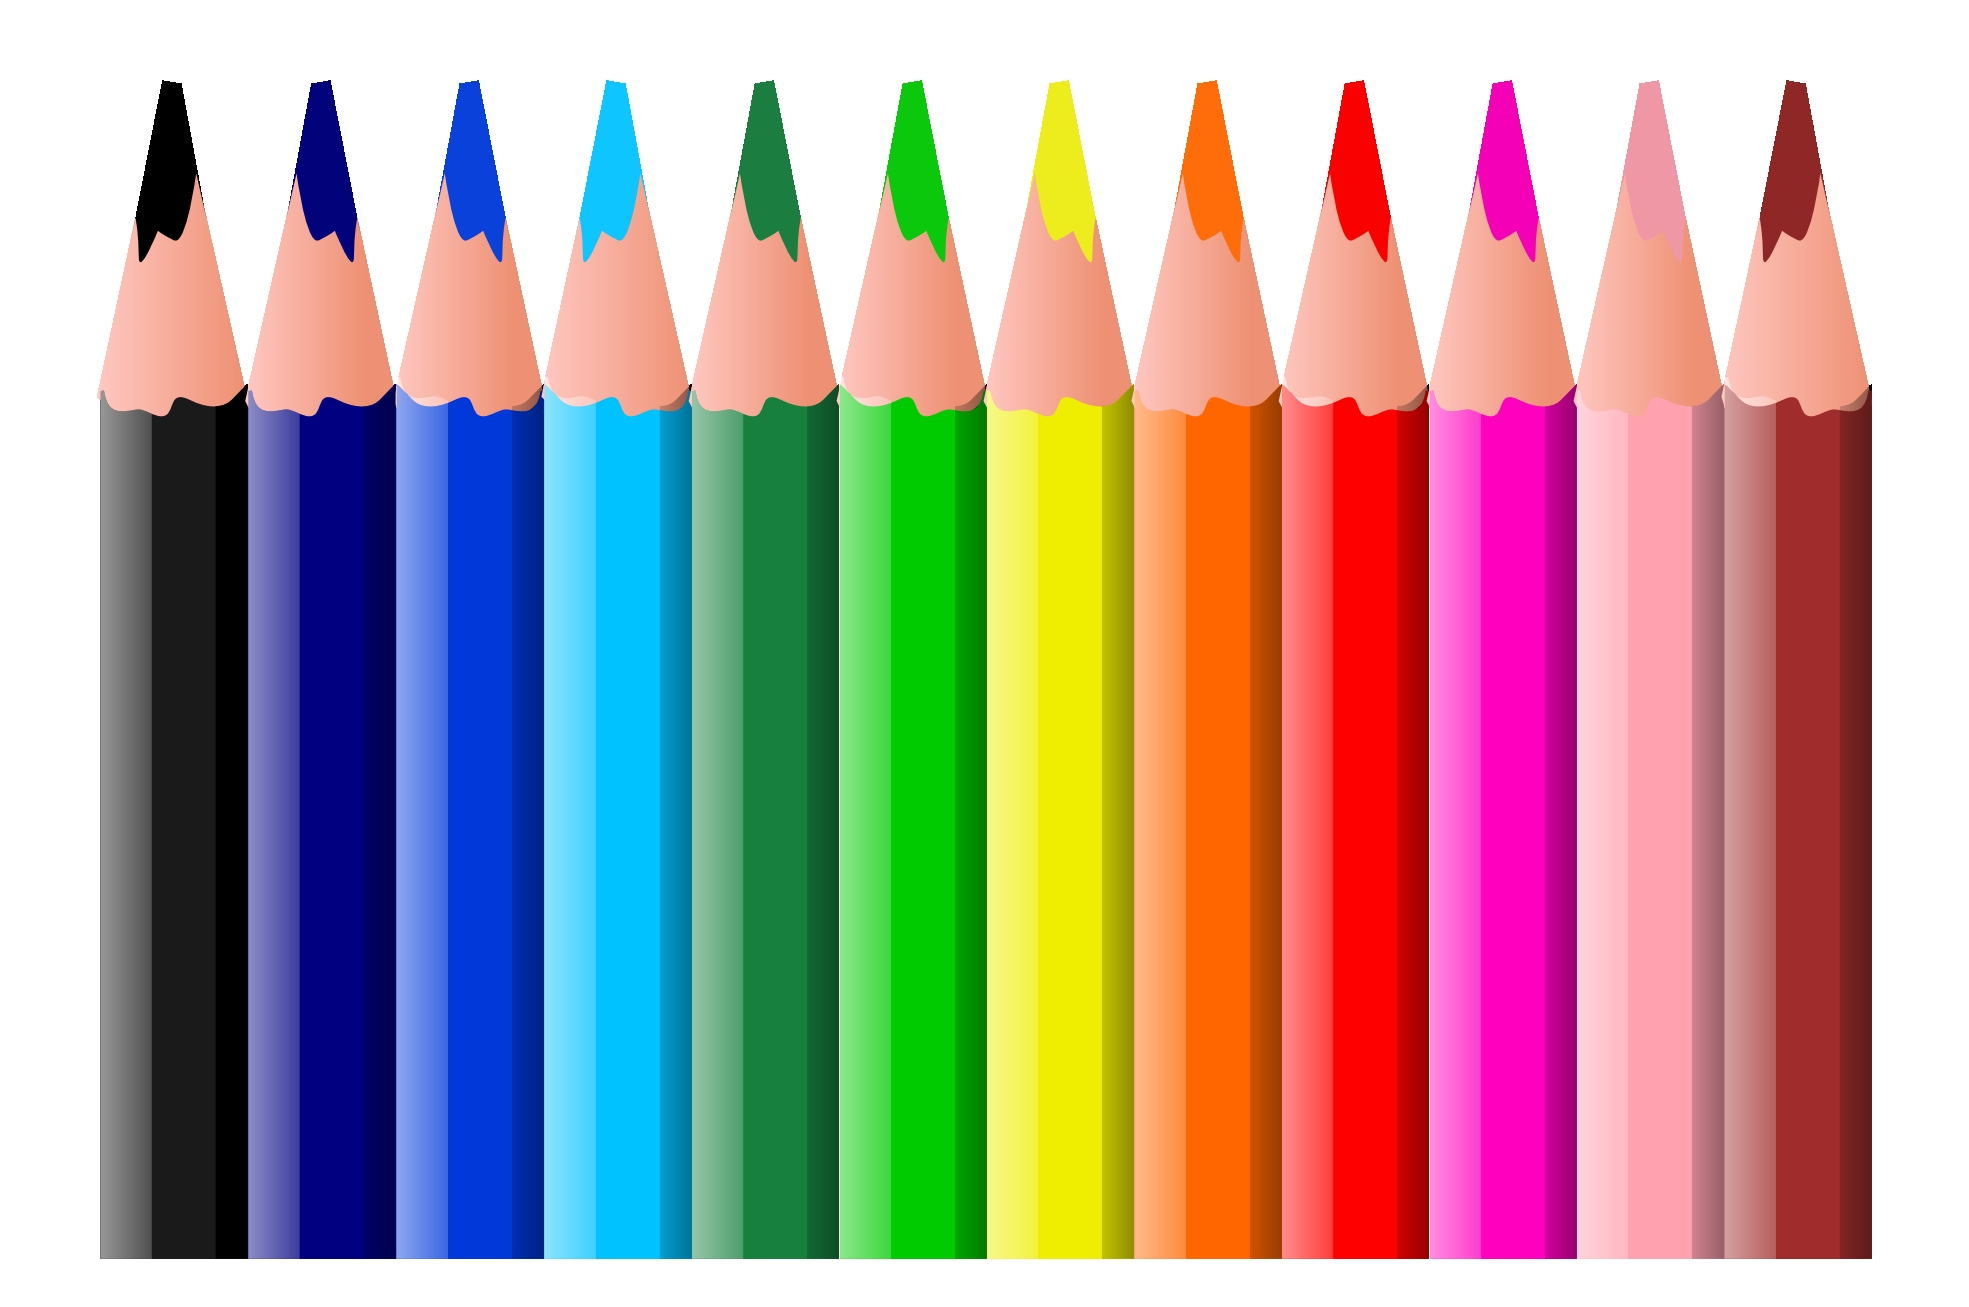 hight resolution of 1969x1307 crayons clipart suggestions for crayons clipart download crayons